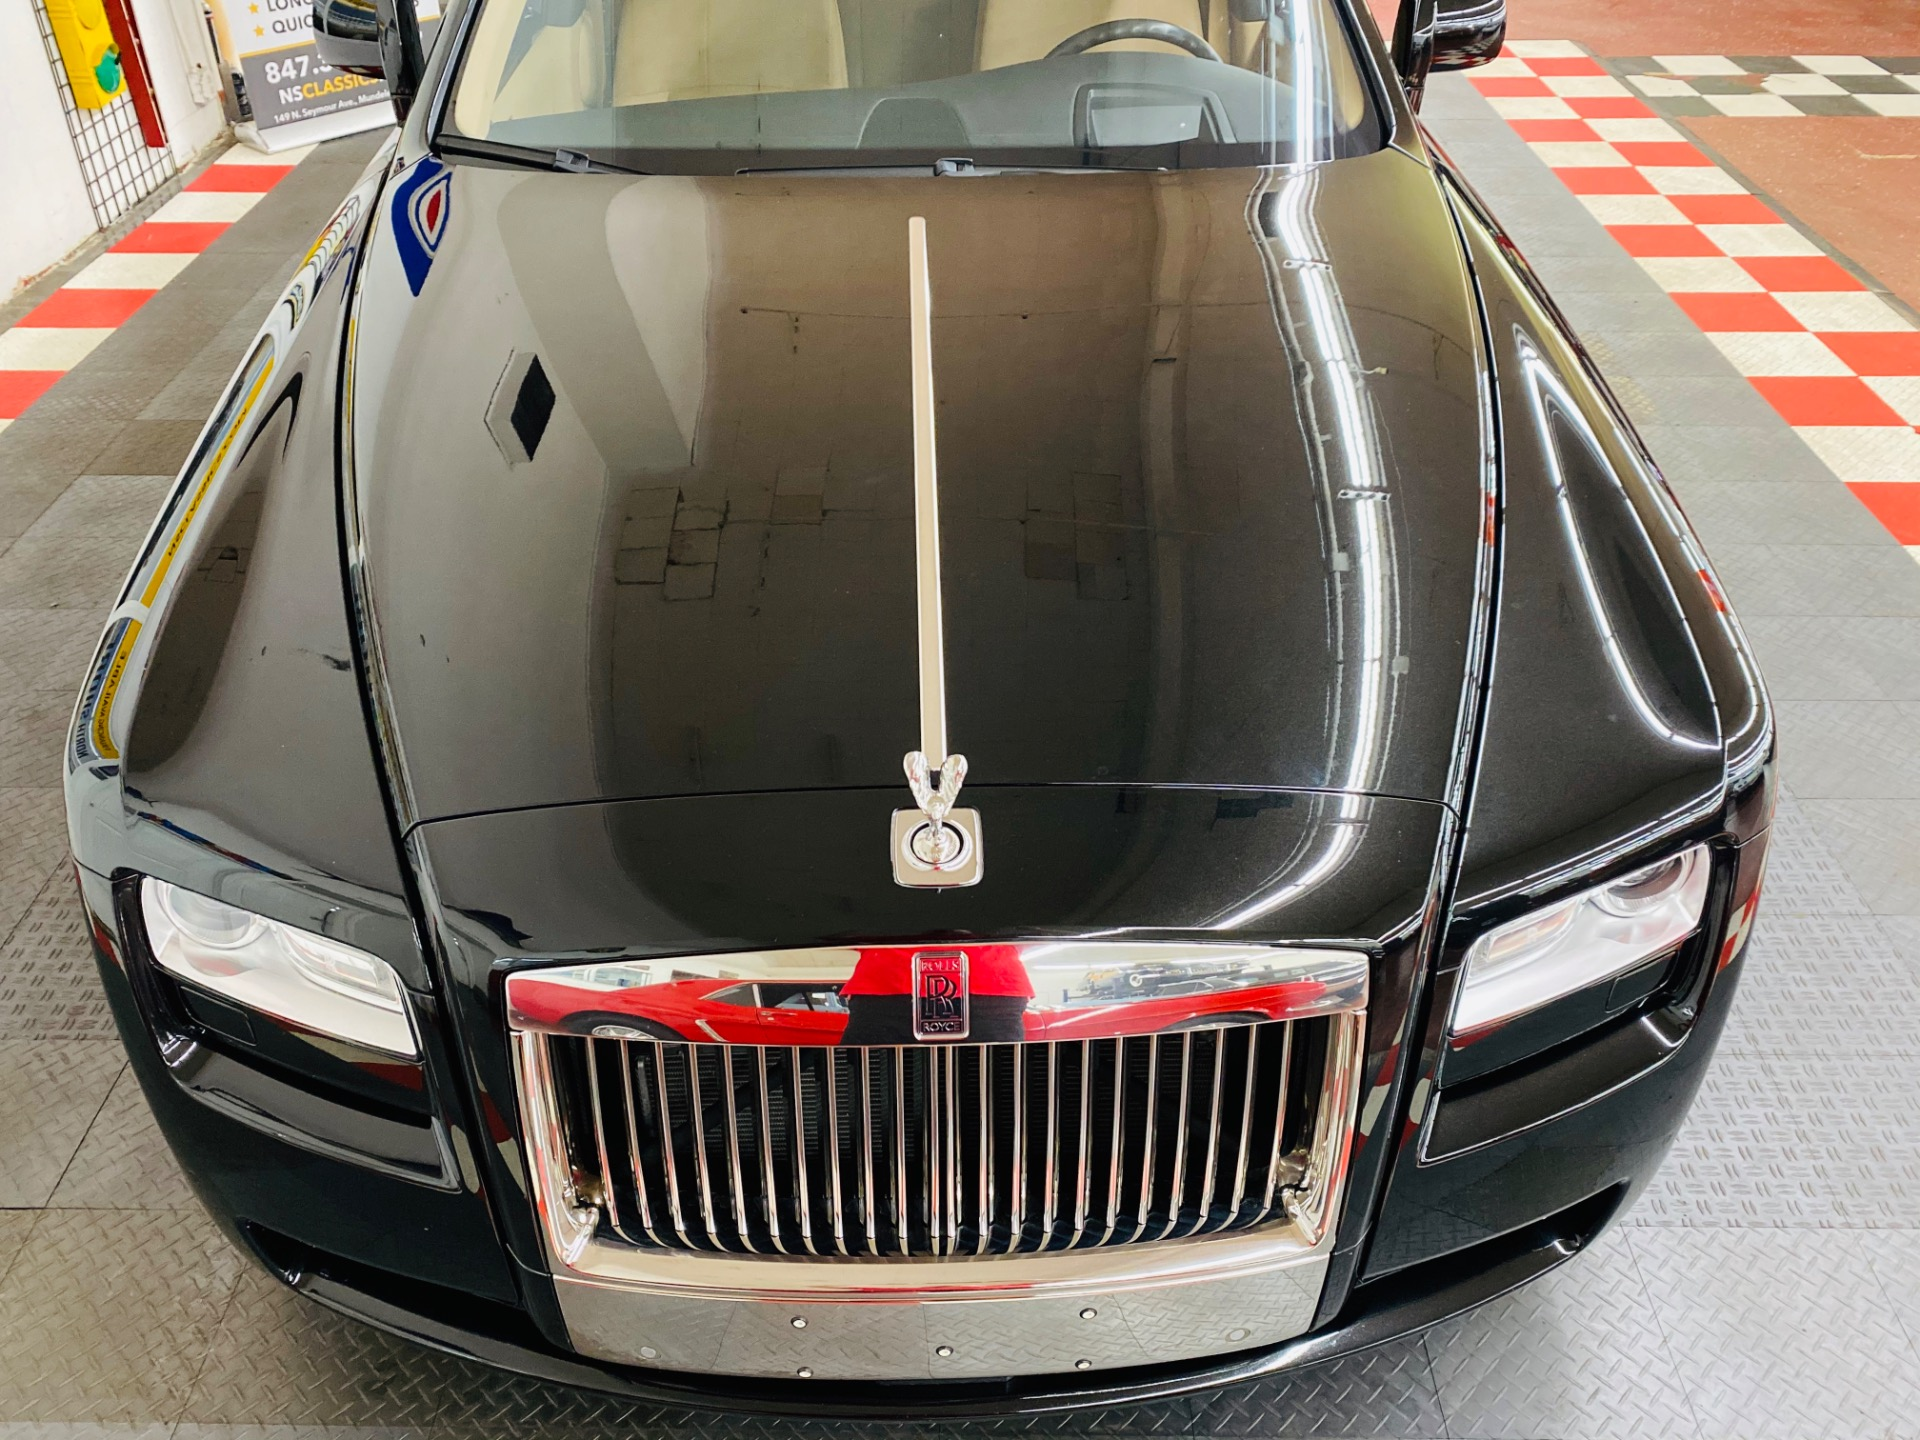 Used 2011 Rolls-Royce Ghost - LUXURY AT ITS FINEST - VERY CLEAN WITH LOW MILES - SEE VIDEO | Mundelein, IL